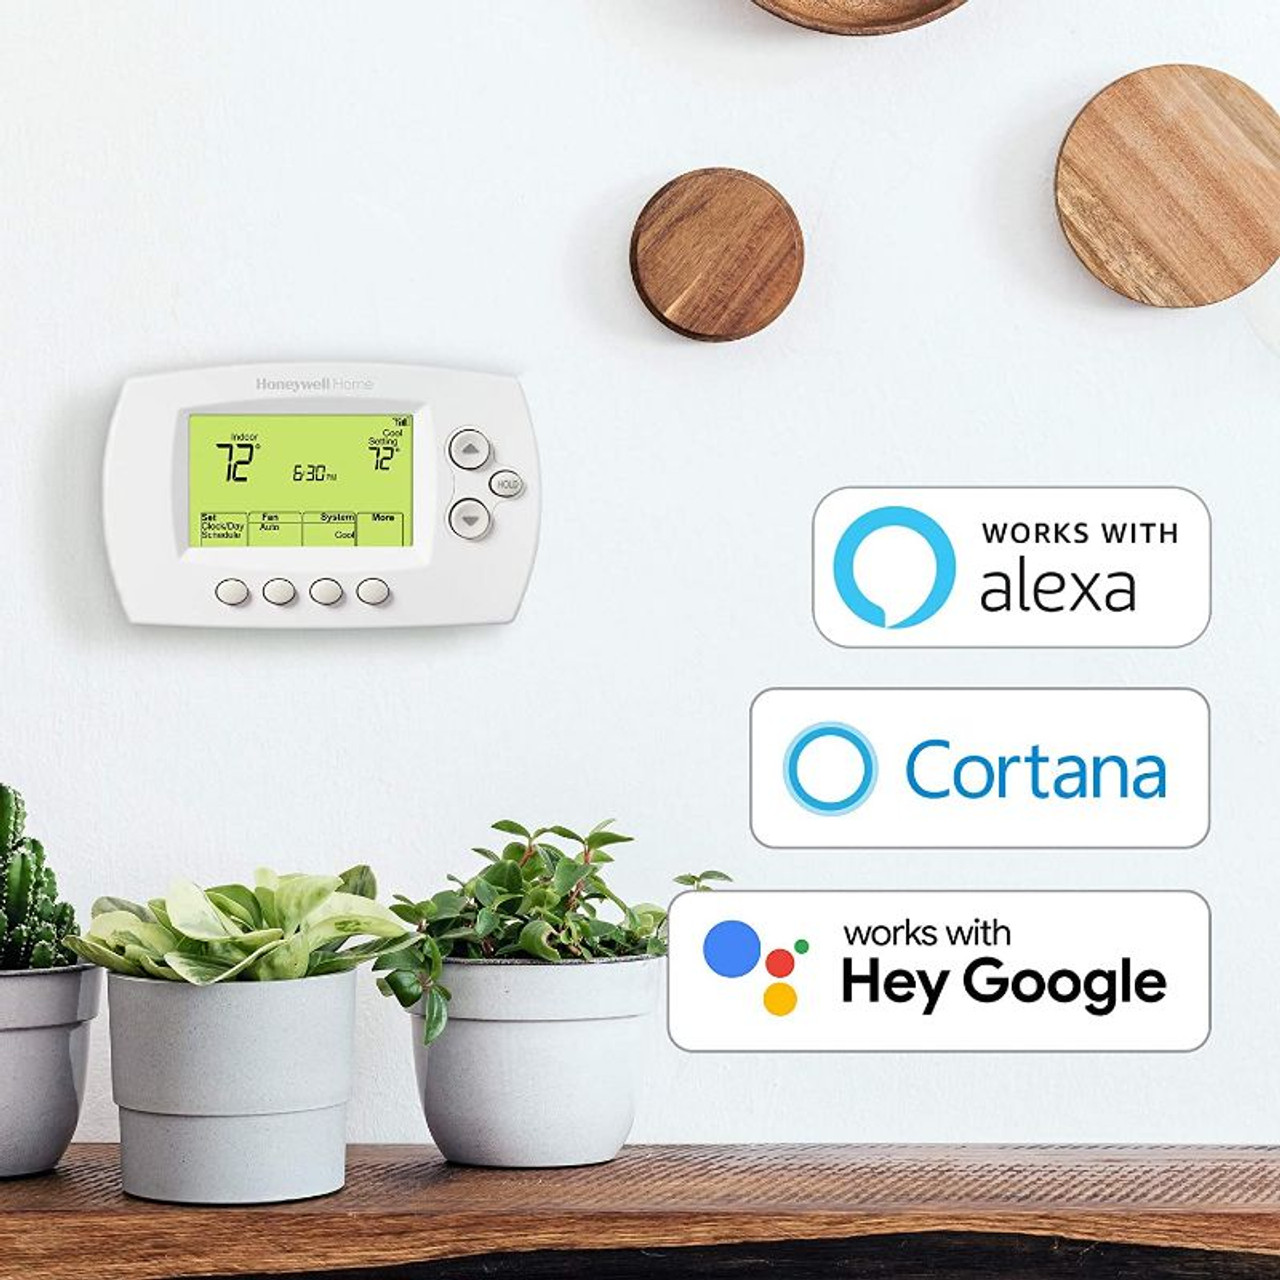 Honeywell Home Wi-Fi 7-Day Programmable Thermostat, Requires C Wire, Works with Alexa